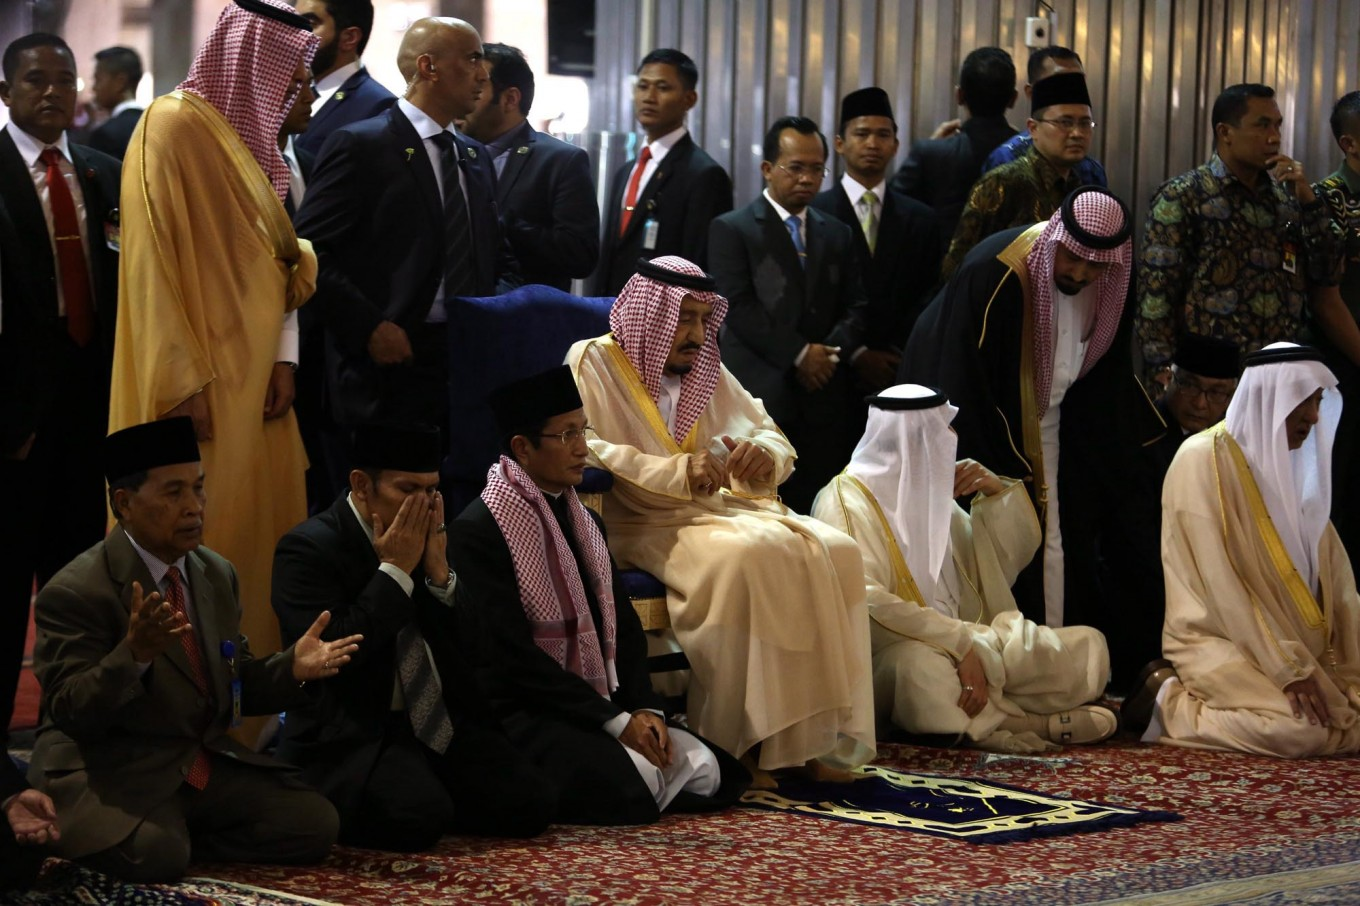 COMMENTARY: The elephant in the room in Saudi king's visit